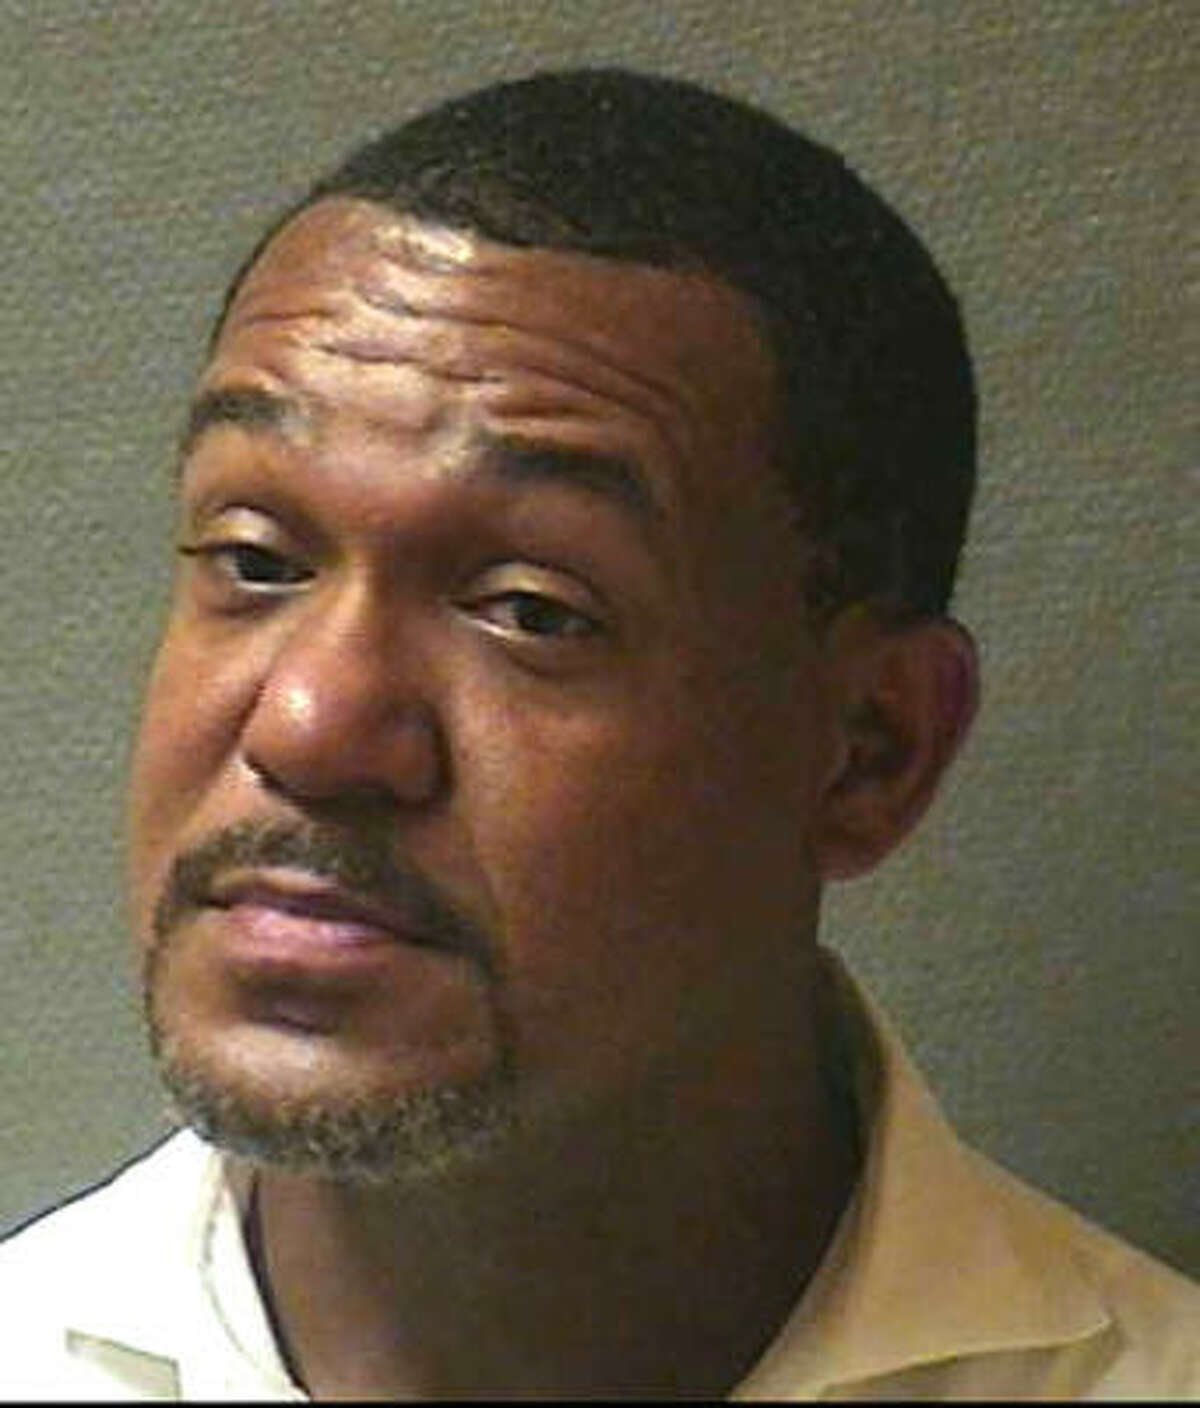 Jarvis Johnson was freed after posting $2,000 bail.